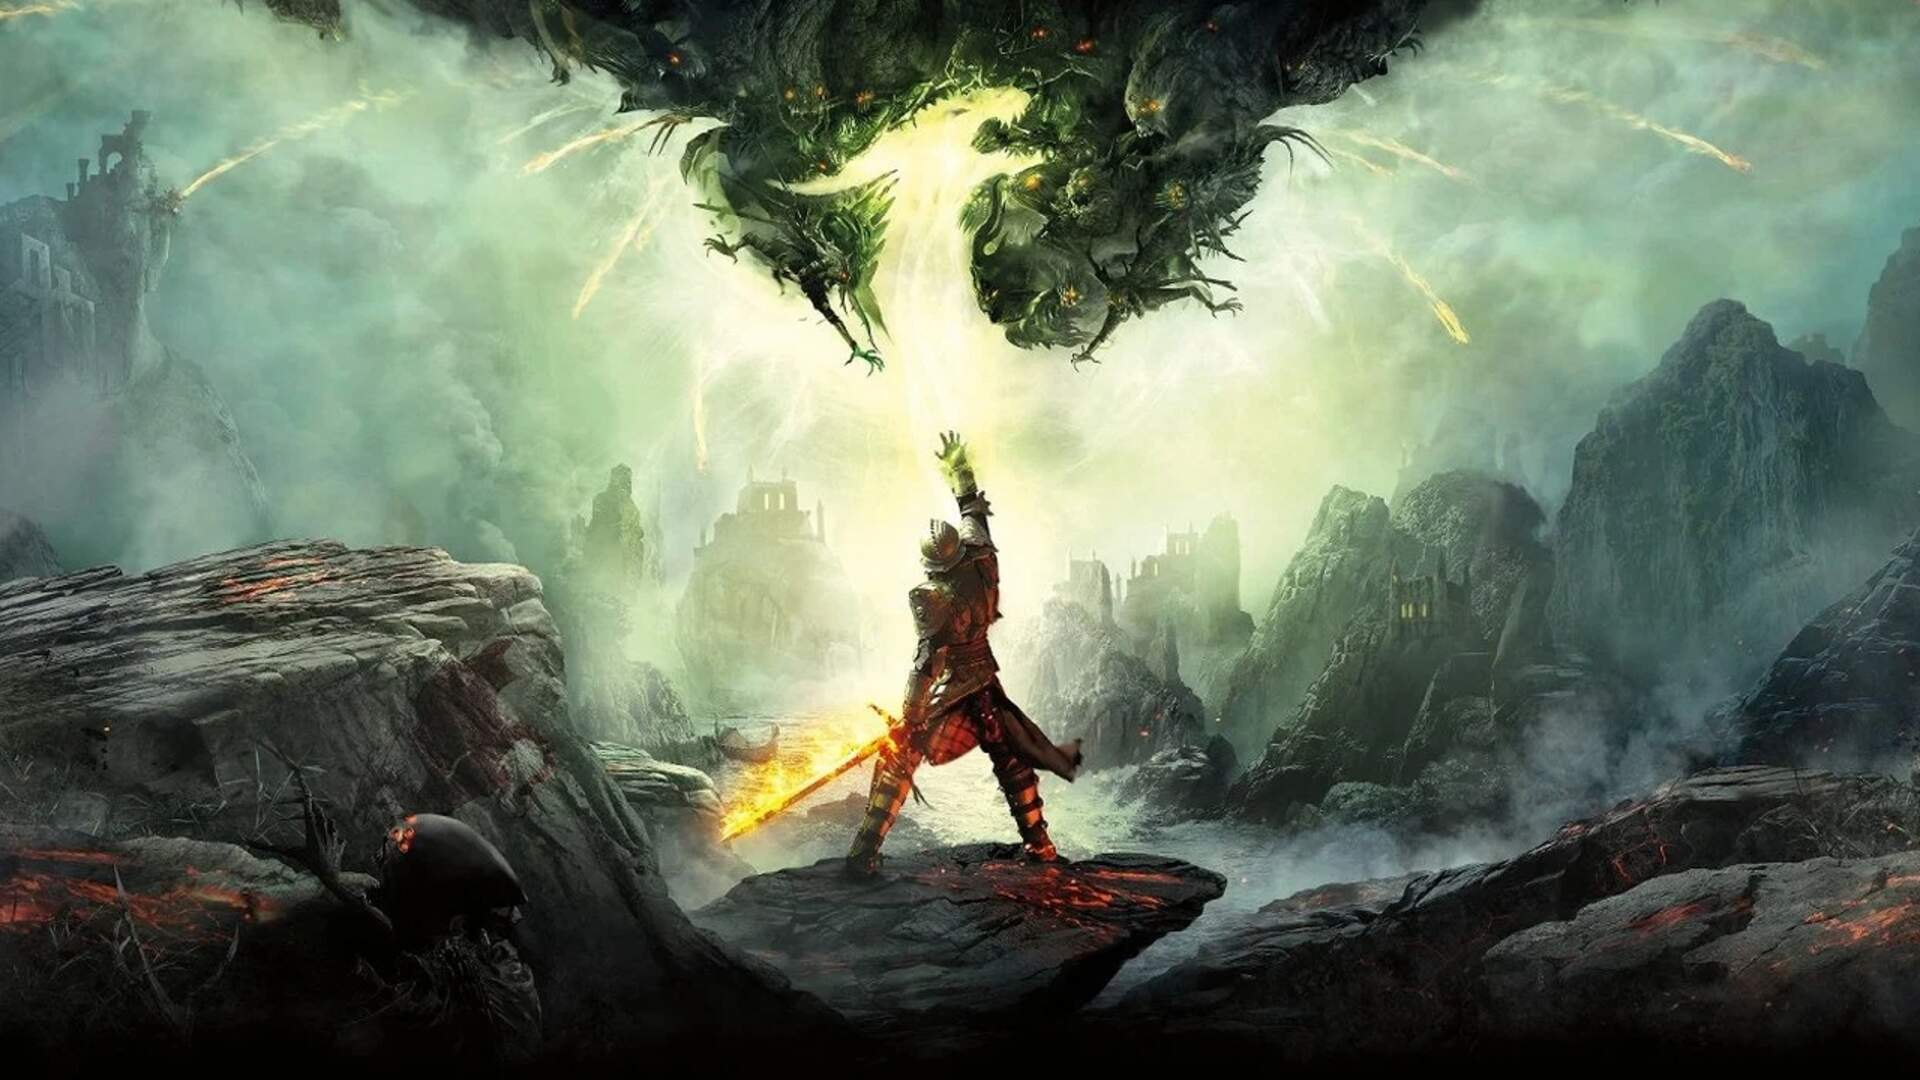 How a Rookie Speedrunner Revitalized Dragon Age: Inquisition by Beating It in Under 30 Minutes